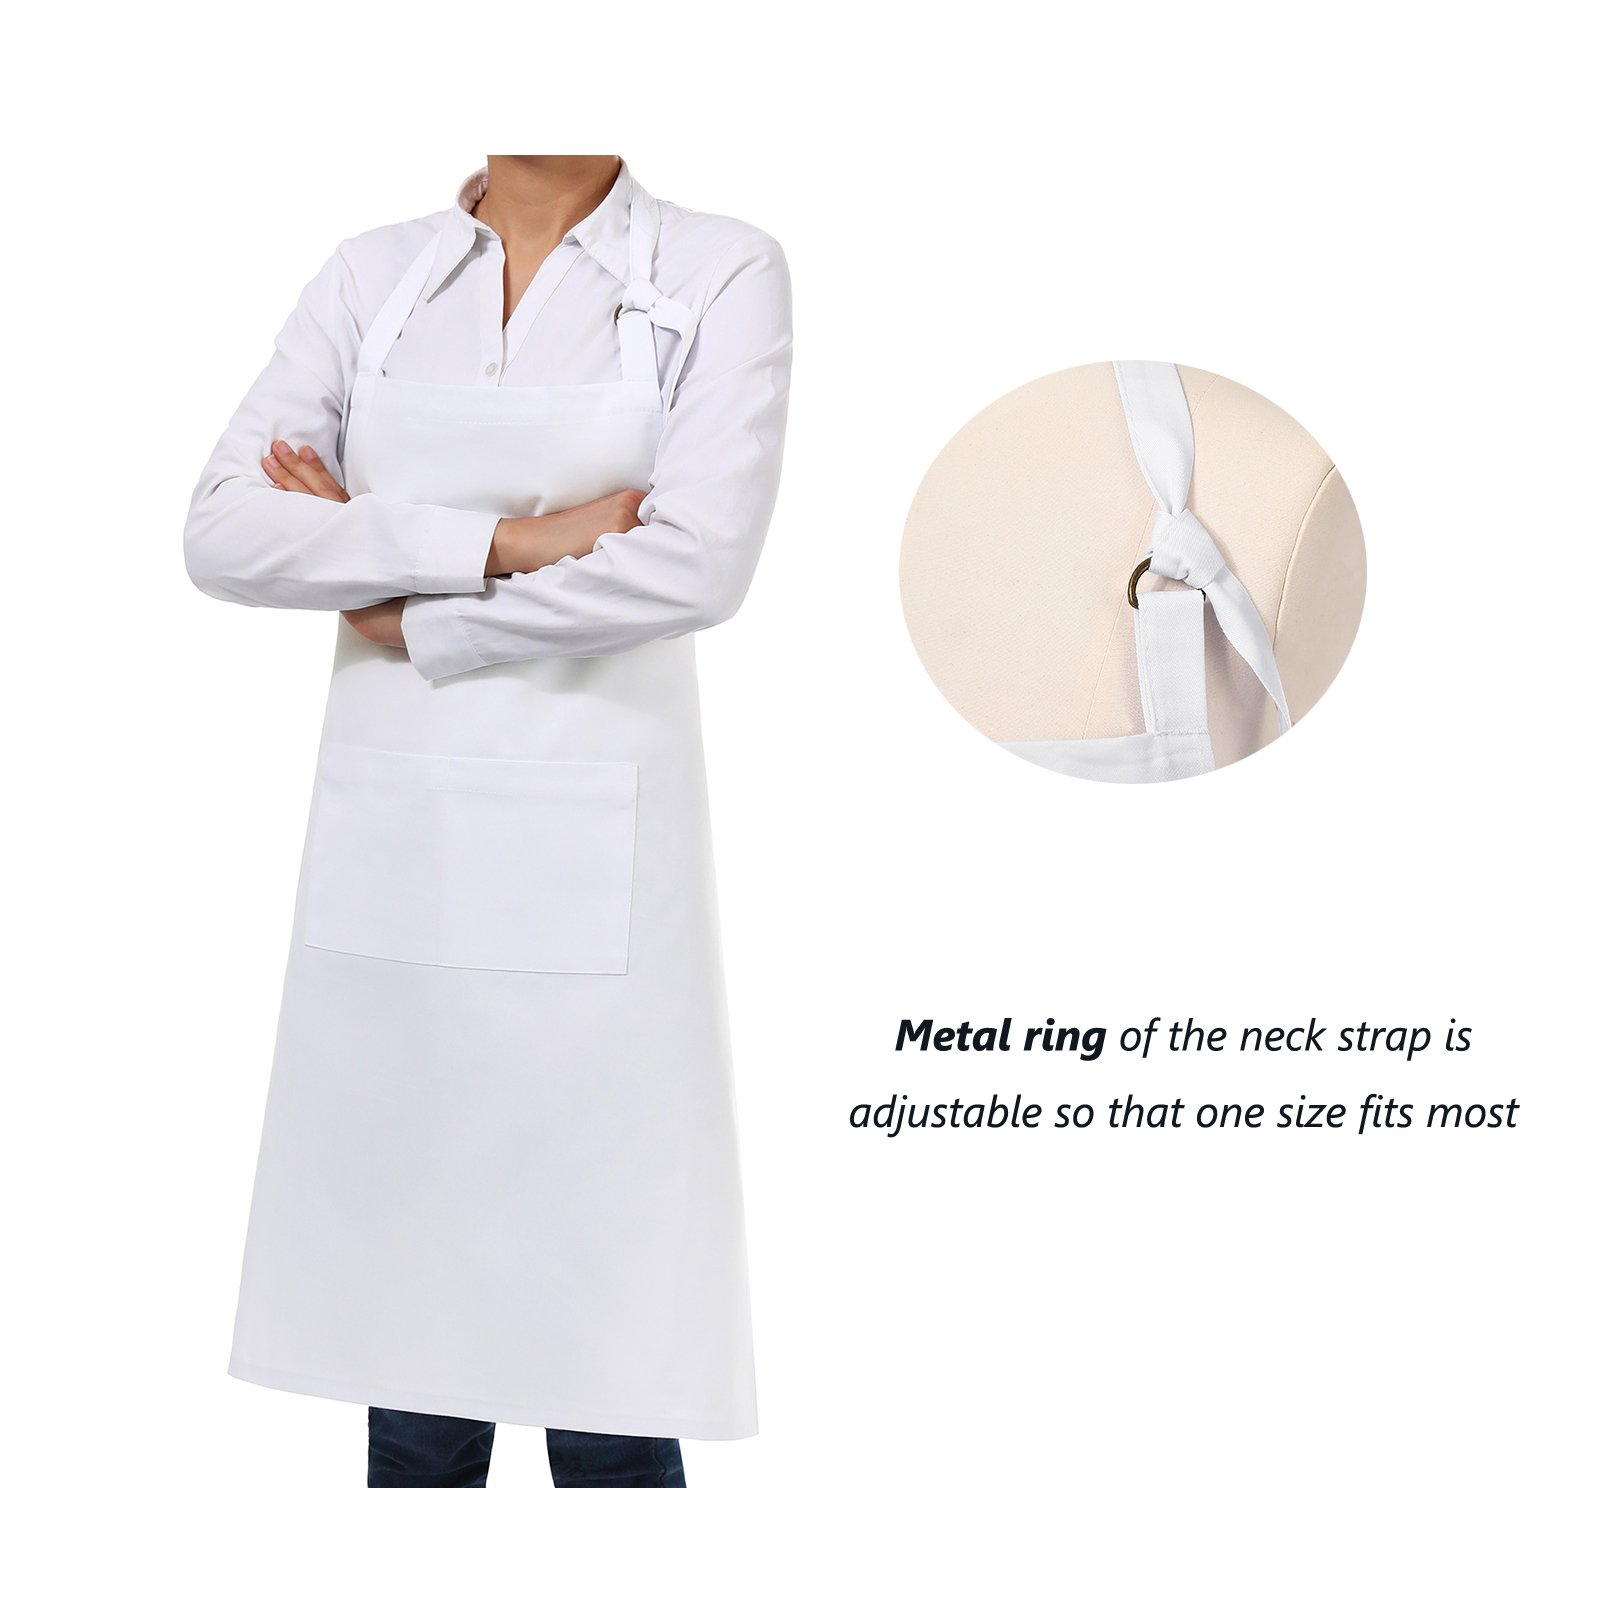 VEEYOO Adjustable Chef Bib Apron with 2 Pockets, Set of 2, Durable Spun Poly Cotton, Cooking Kitchen Restaurant Uniform Aprons for Men Women, 32x28 inches, White by VEEYOO (Image #3)